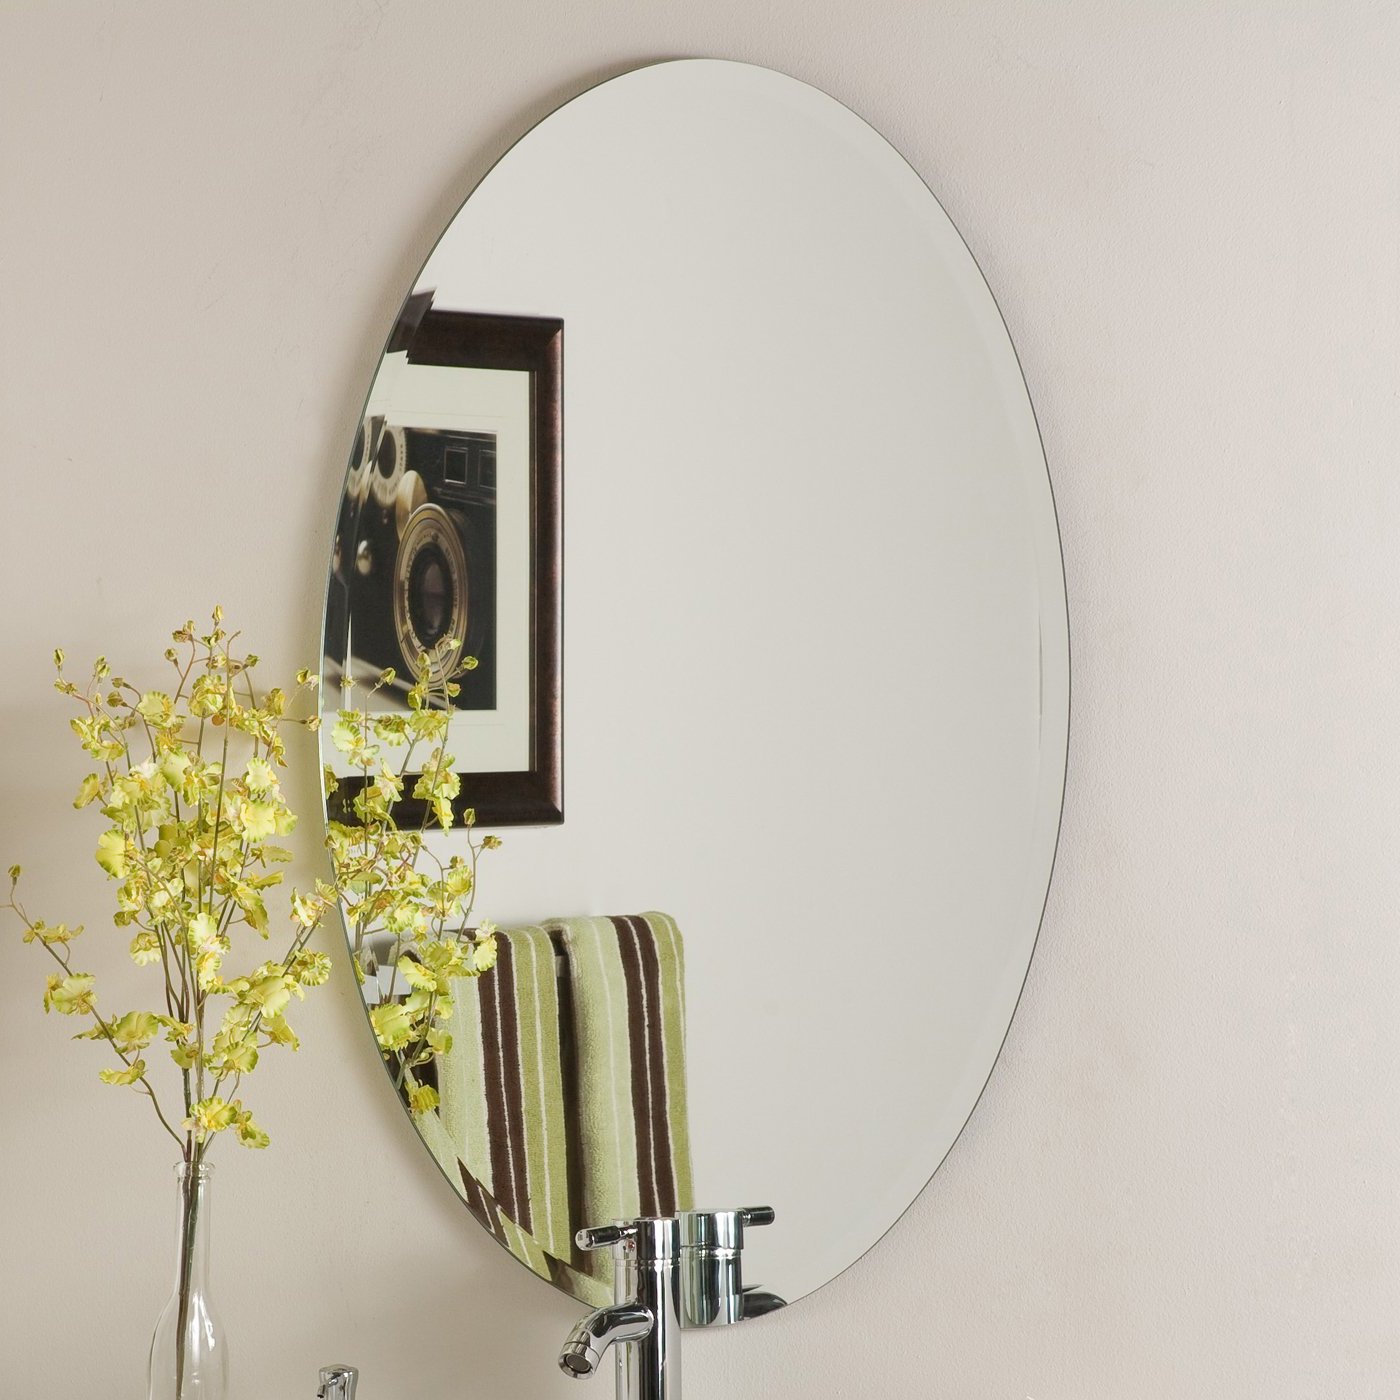 Decor Wonderland Helmer Oval Beveled Frameless Wall Mirror With Regard To 2020 Frameless Bathroom Wall Mirrors (View 4 of 20)